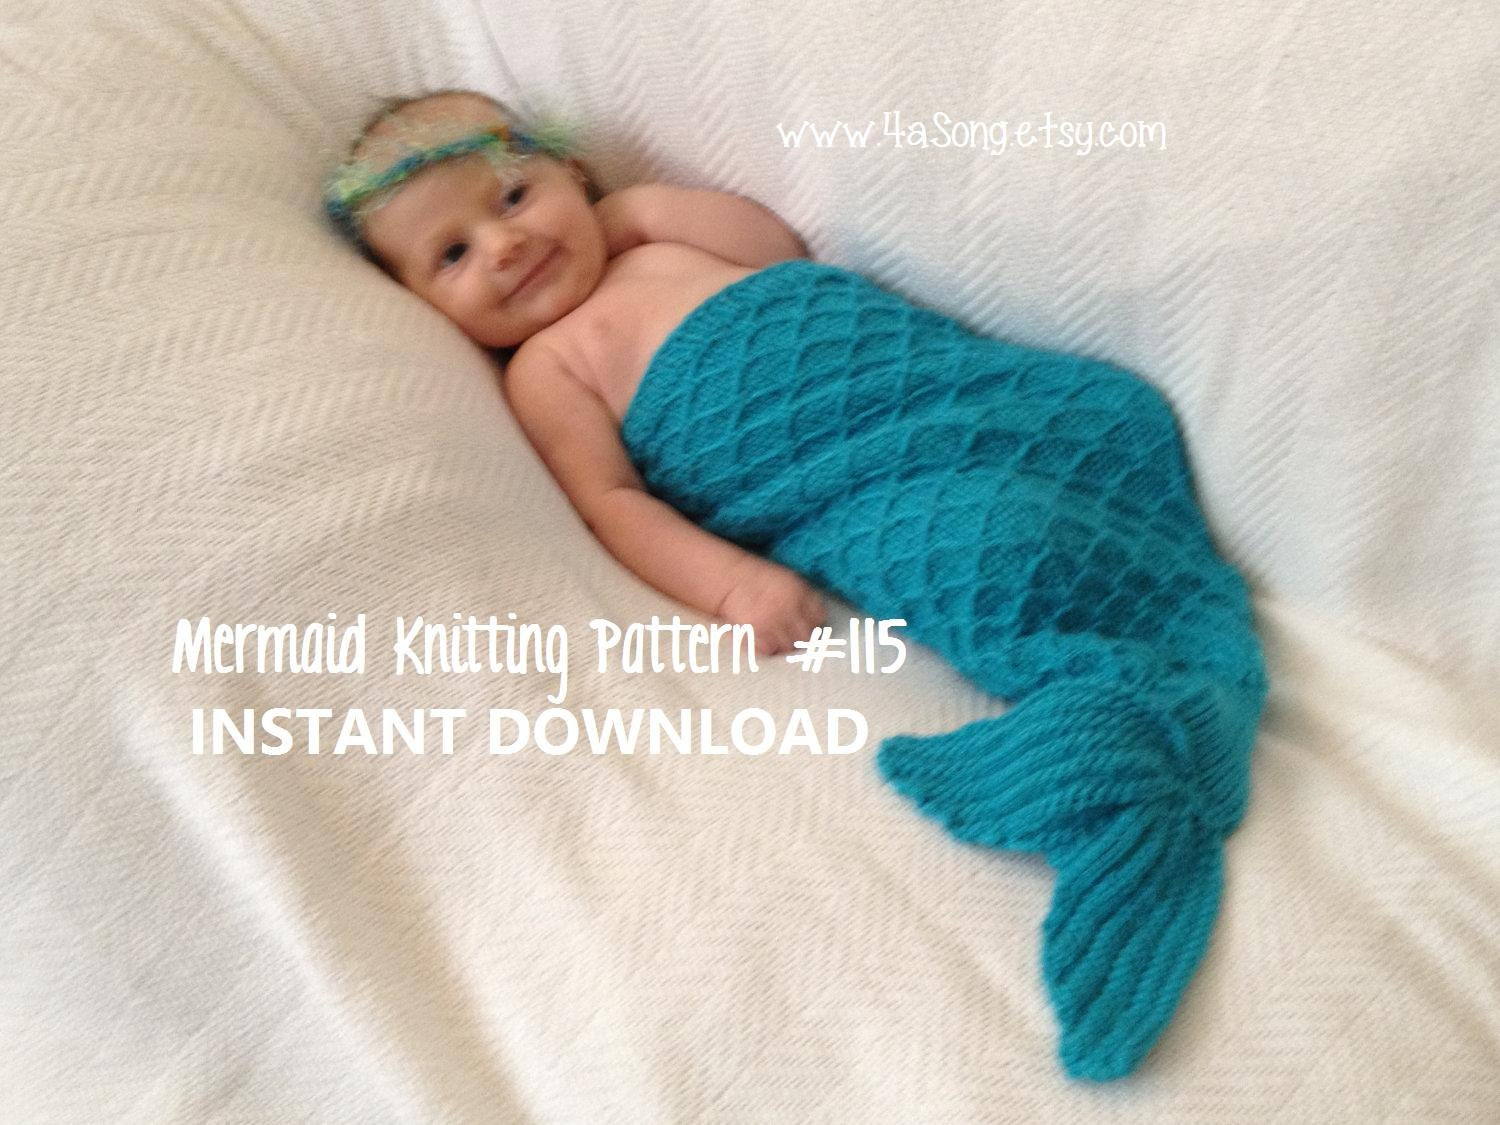 Mermaid Cocoon Knitting Pattern Mermaid Tail Cocoon Knitting Pattern Charming Newborn Photo Prop Pdf Number 115 Instant Download 45000 Patterns Sold